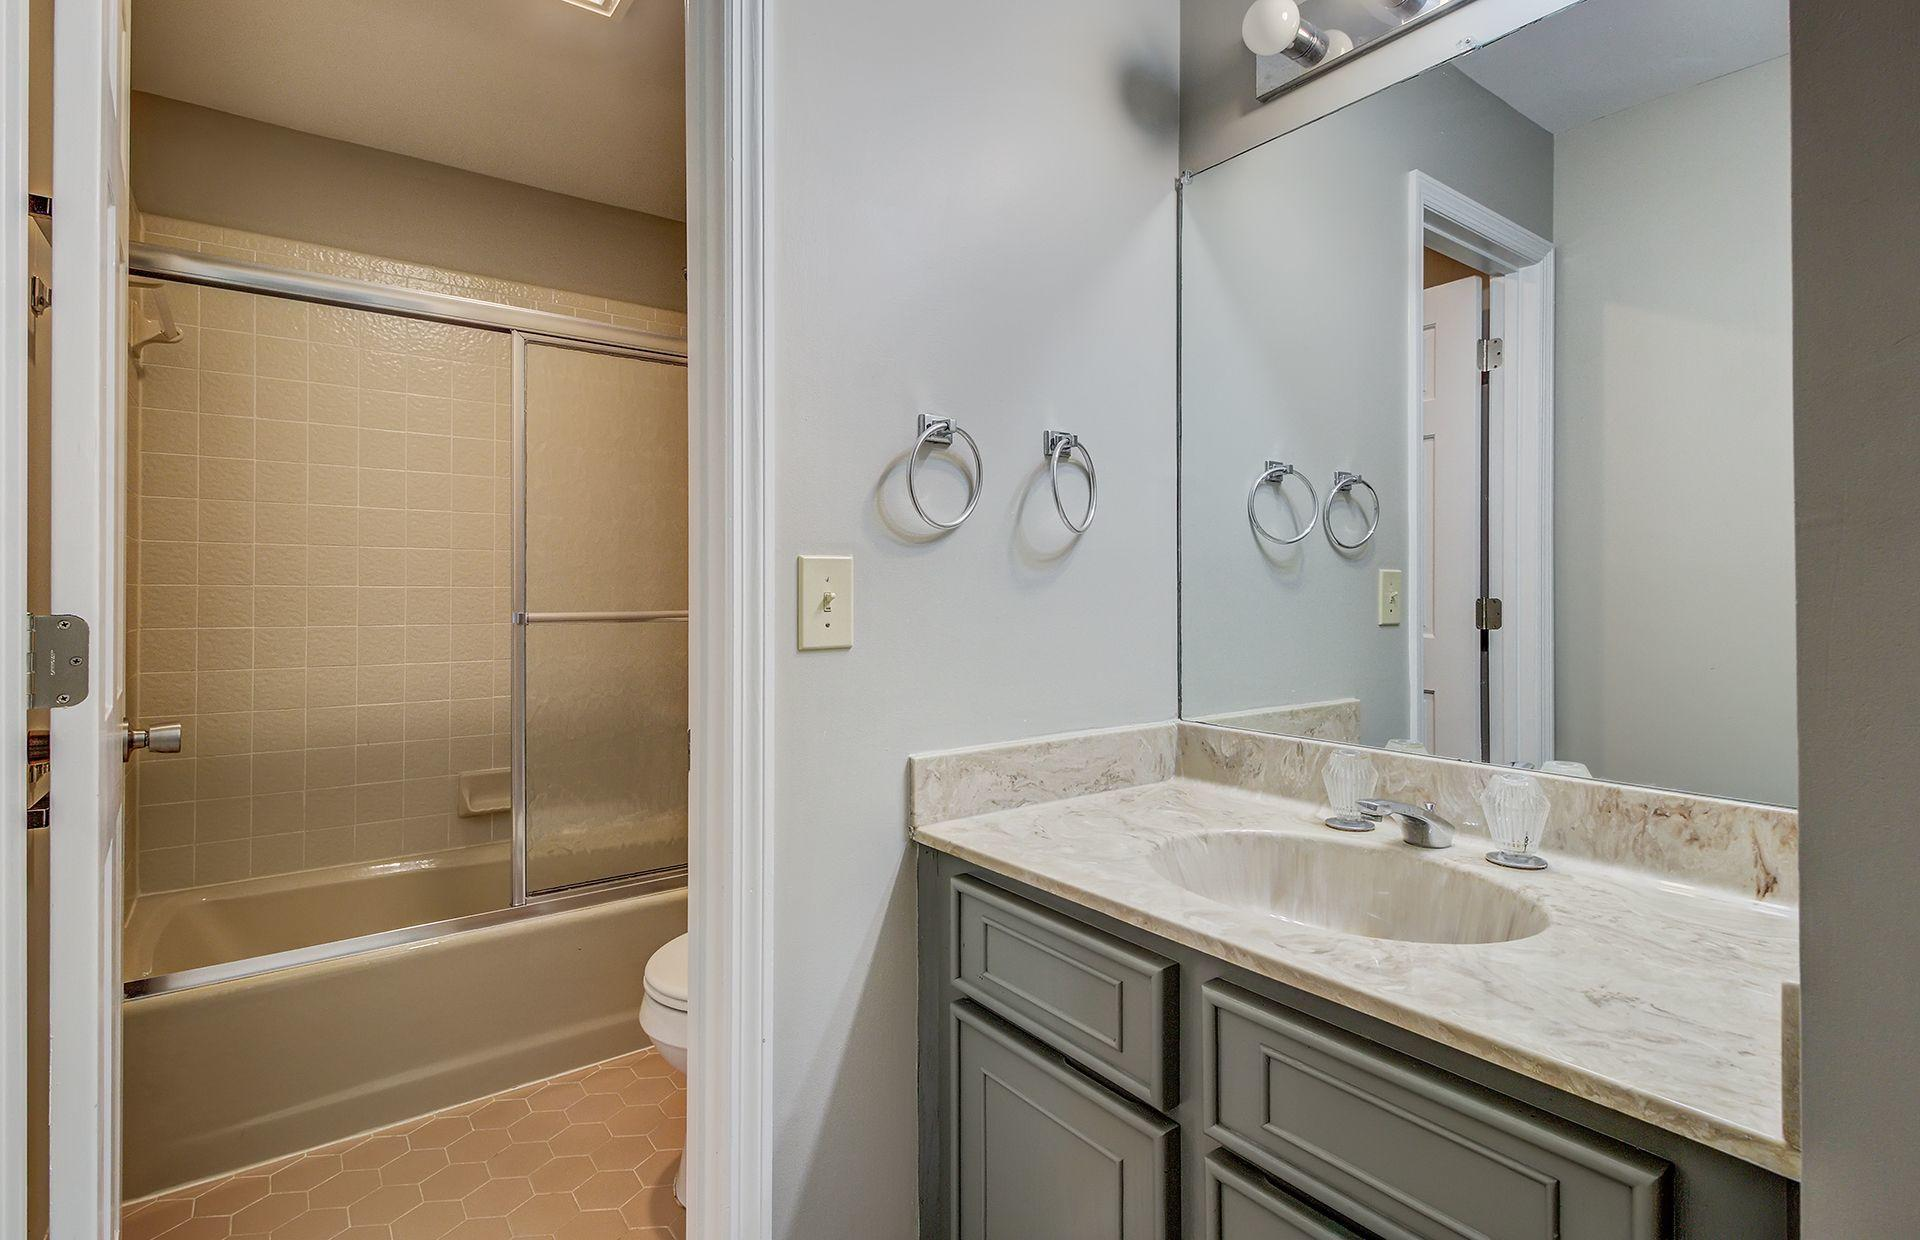 Rivers Point Homes For Sale - 141 Oyster Point, Charleston, SC - 16